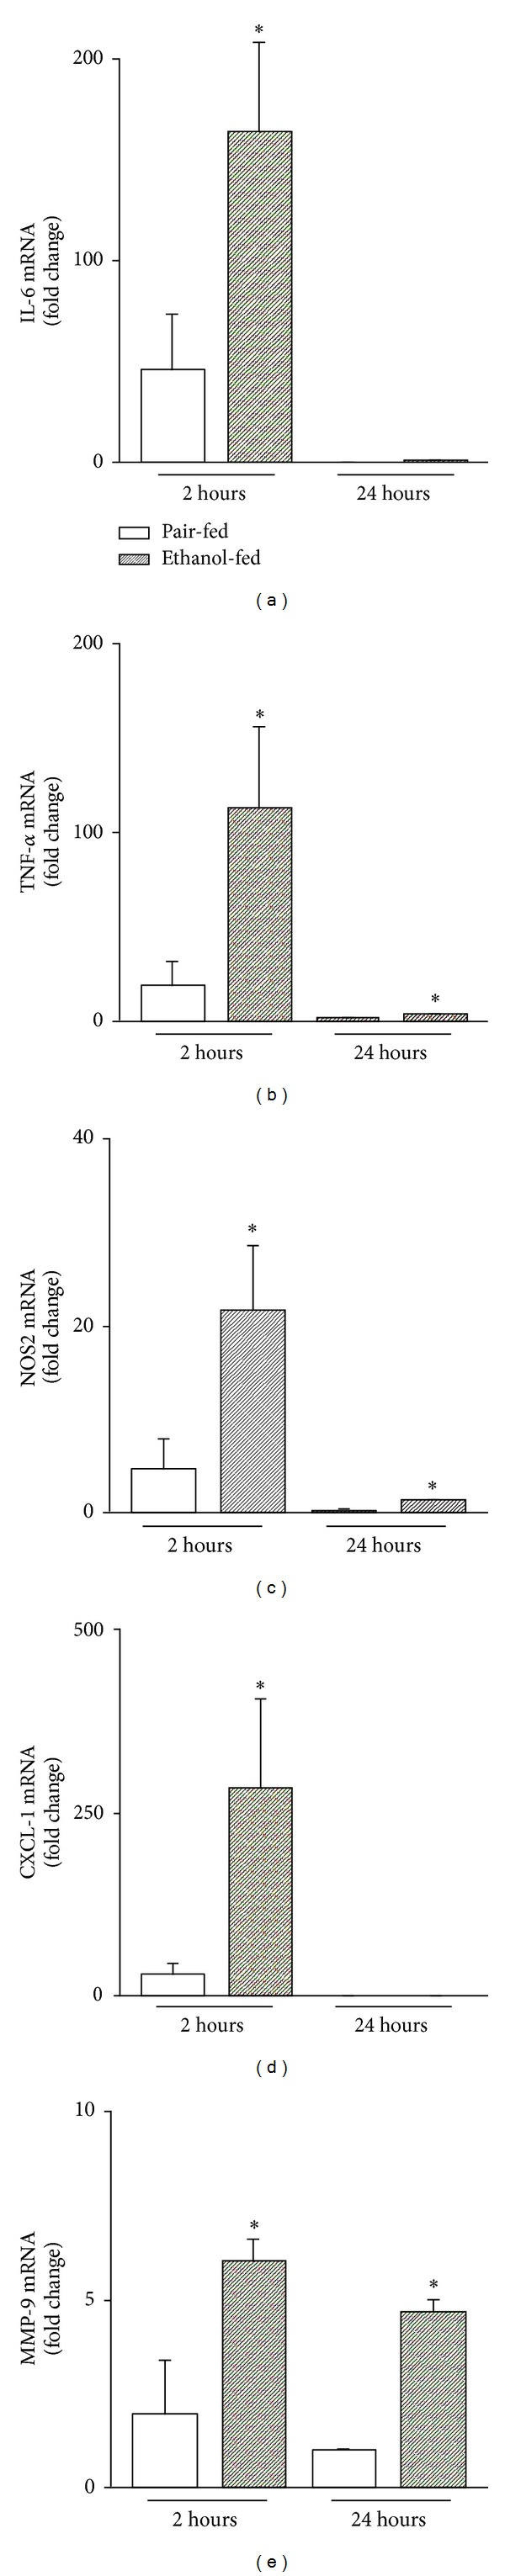 NF- κ B target gene expression in isolated Kupffer cells in response to LPS after ethanol feeding F4/80 + macrophages were isolated from livers of ethanol-, pair-fed mice, respectively, and stimulated with LPS (10 μ g/mL, Figure 7 ) for 2 h and 24 h. Supernatants were measured for mRNA levels of IL-6 (a), TNF- α (b), NOS2 (c), CXCL-1 (d), and MMP-9 (e) by RT-PCR. Data (mean ± SEM) are expressed as fold change compared with corresponding medium controls (unstimulated) and are representative of five to eight separate experiments. * P